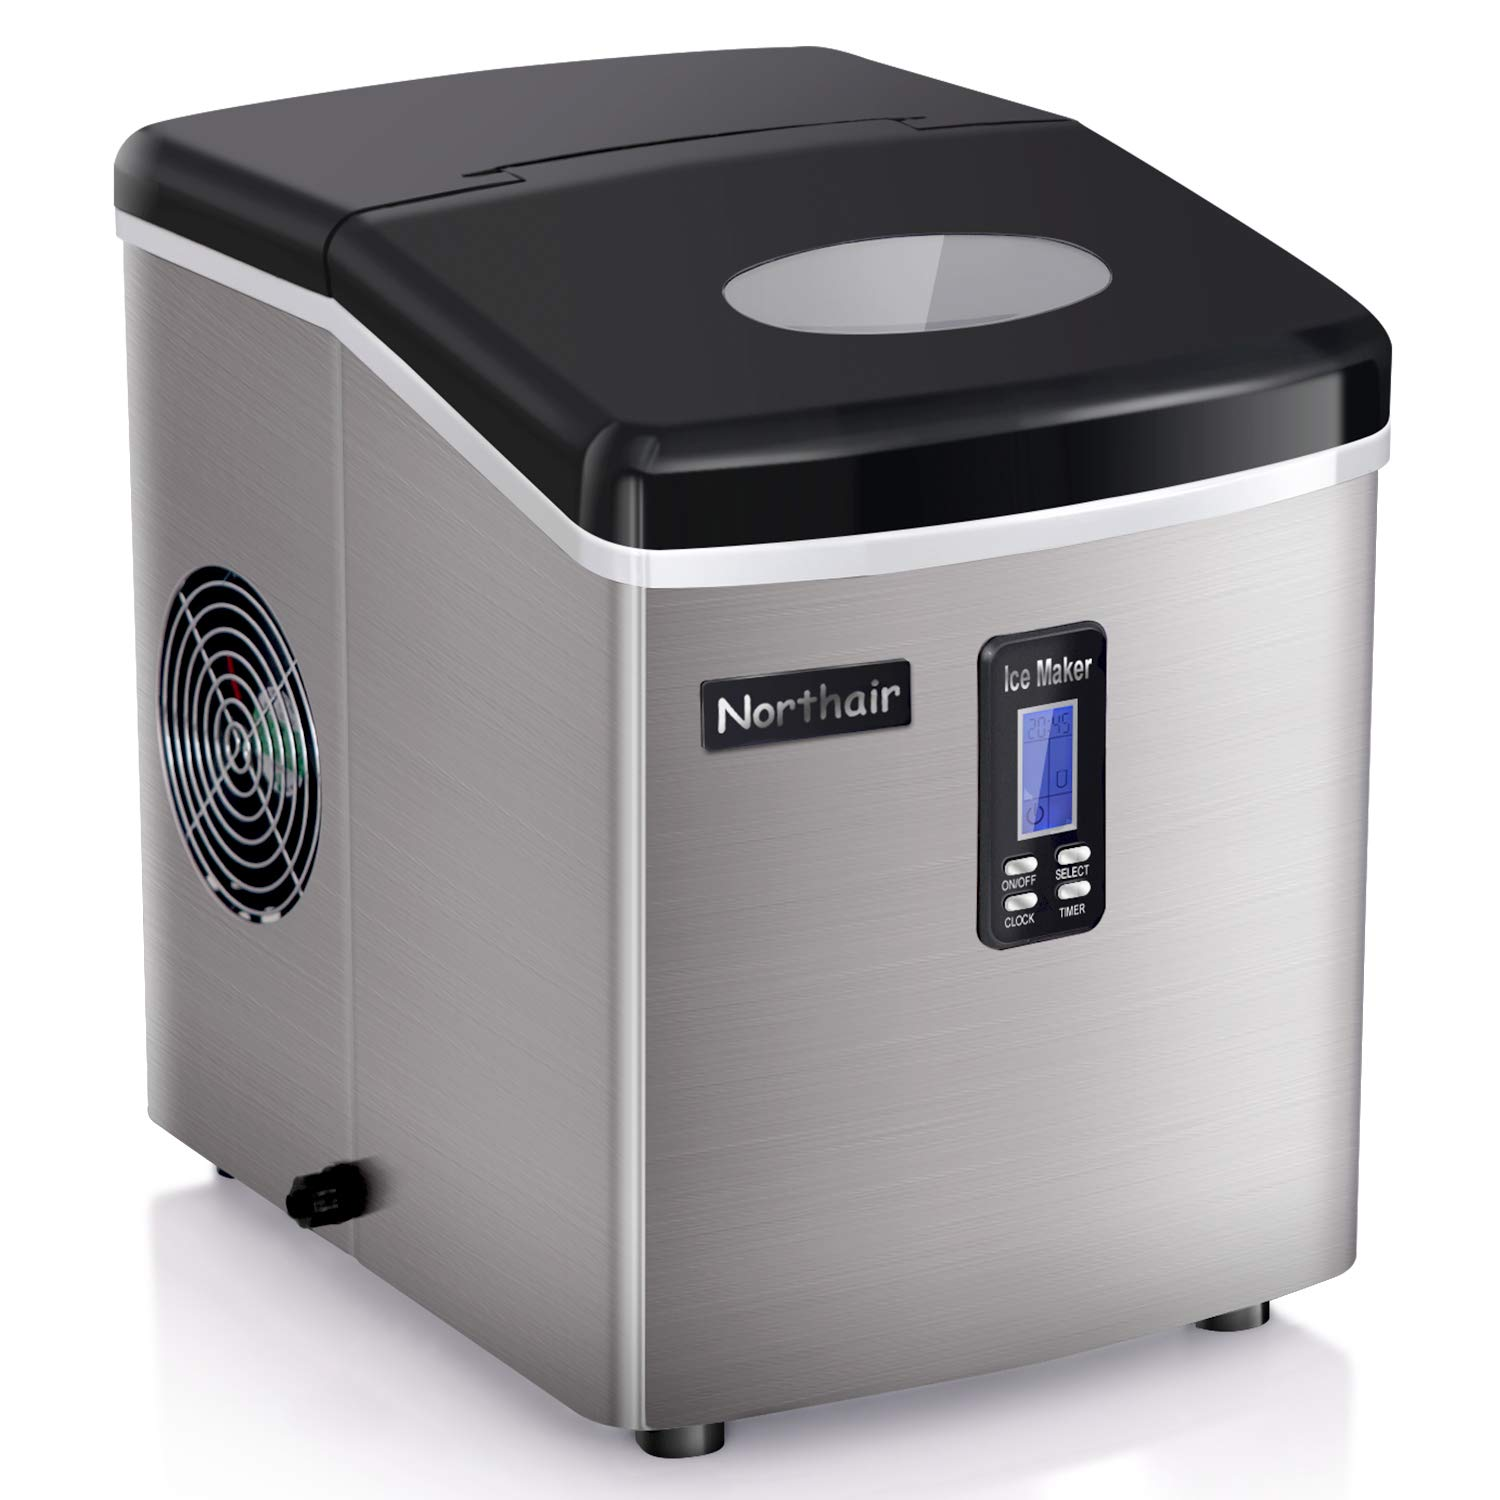 Northair Stainless Steel Ice Maker 35lbs Per Day with Timer, Portable Ice Making Machine Compact, 7-15 Minutes High Efficiently Creates 9 Ices, S-M-L 3 Size Bullet Ice with Ice Scoop, LCD Display